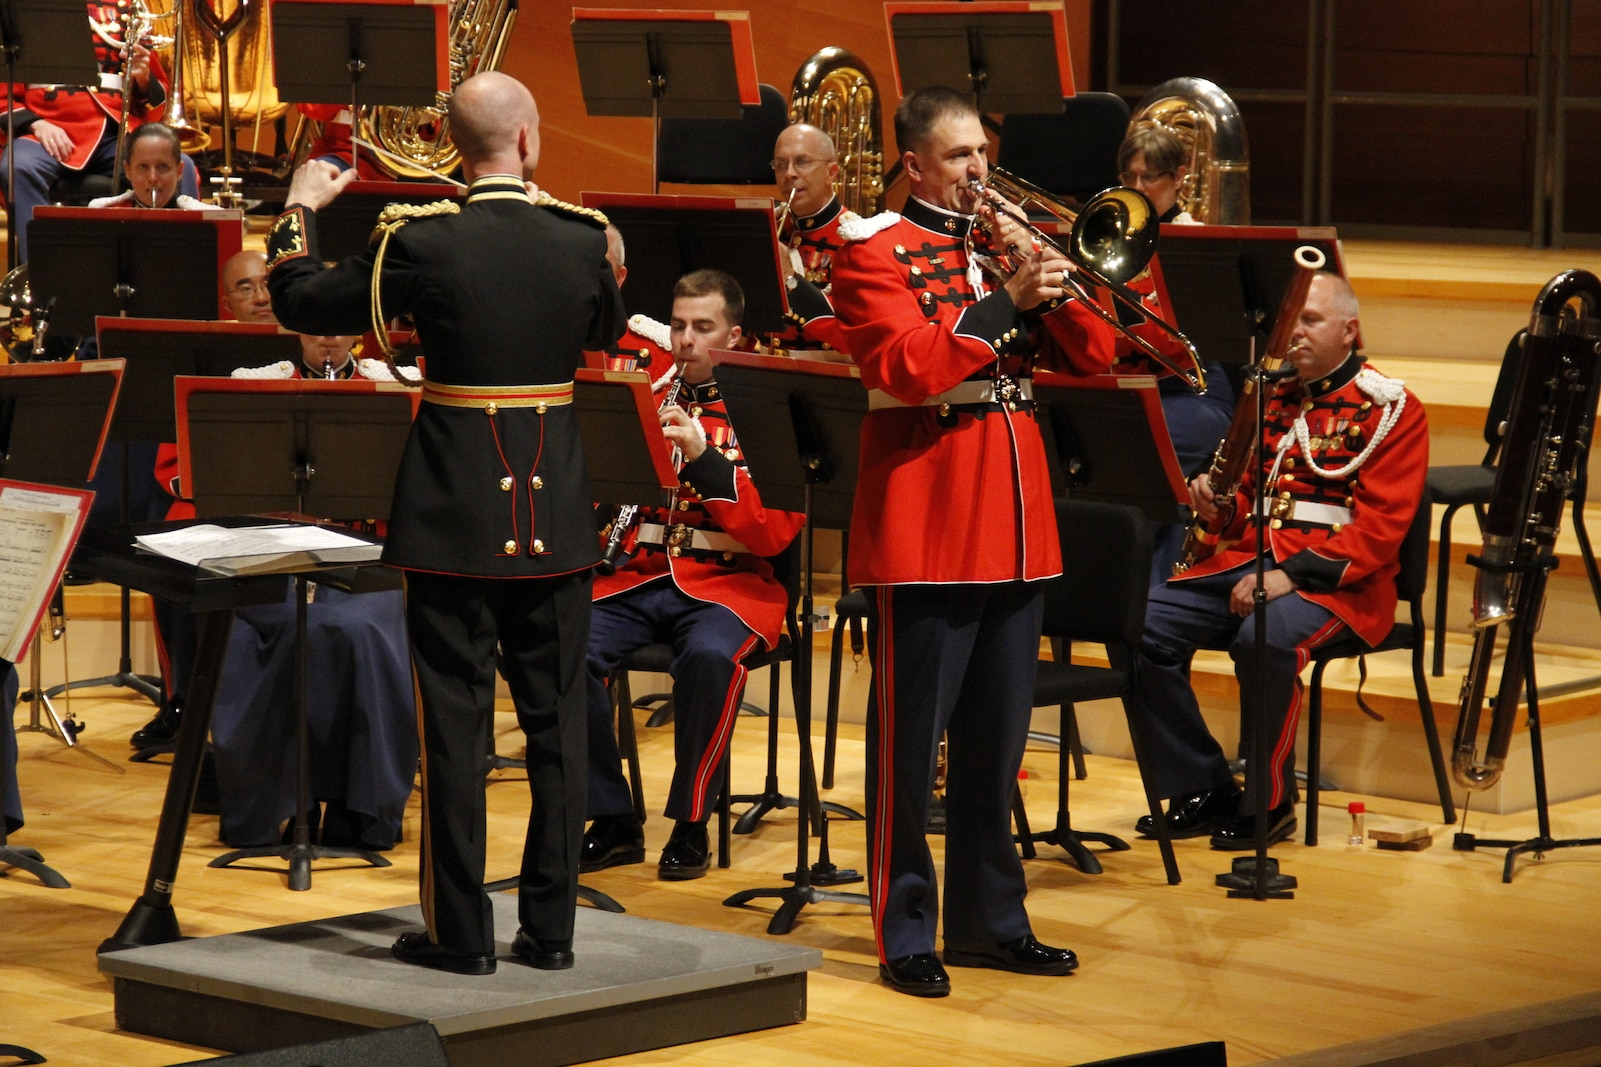 """Lieutenant Col. Jason K. Fettig, the United States Marine Band director, conducts the Marine Band while Gunnery Sgt. Samuel Barlow, a Marine Band trombonist, performs the solo portion of composer Arthur Pryor's """"Fantastic Polka"""" in Helzberg Hall at the Kauffman Center for the Performing Arts in Kansas City, Mo., as part of its 2014 National Tour. The Marine Band, also known as the """"President's Own"""", is the oldest military band in the nation and the oldest professional musical organization in the country. The Marine Band performs at state funerals, presidential inaugurations, various sporting events, and other significant national events."""